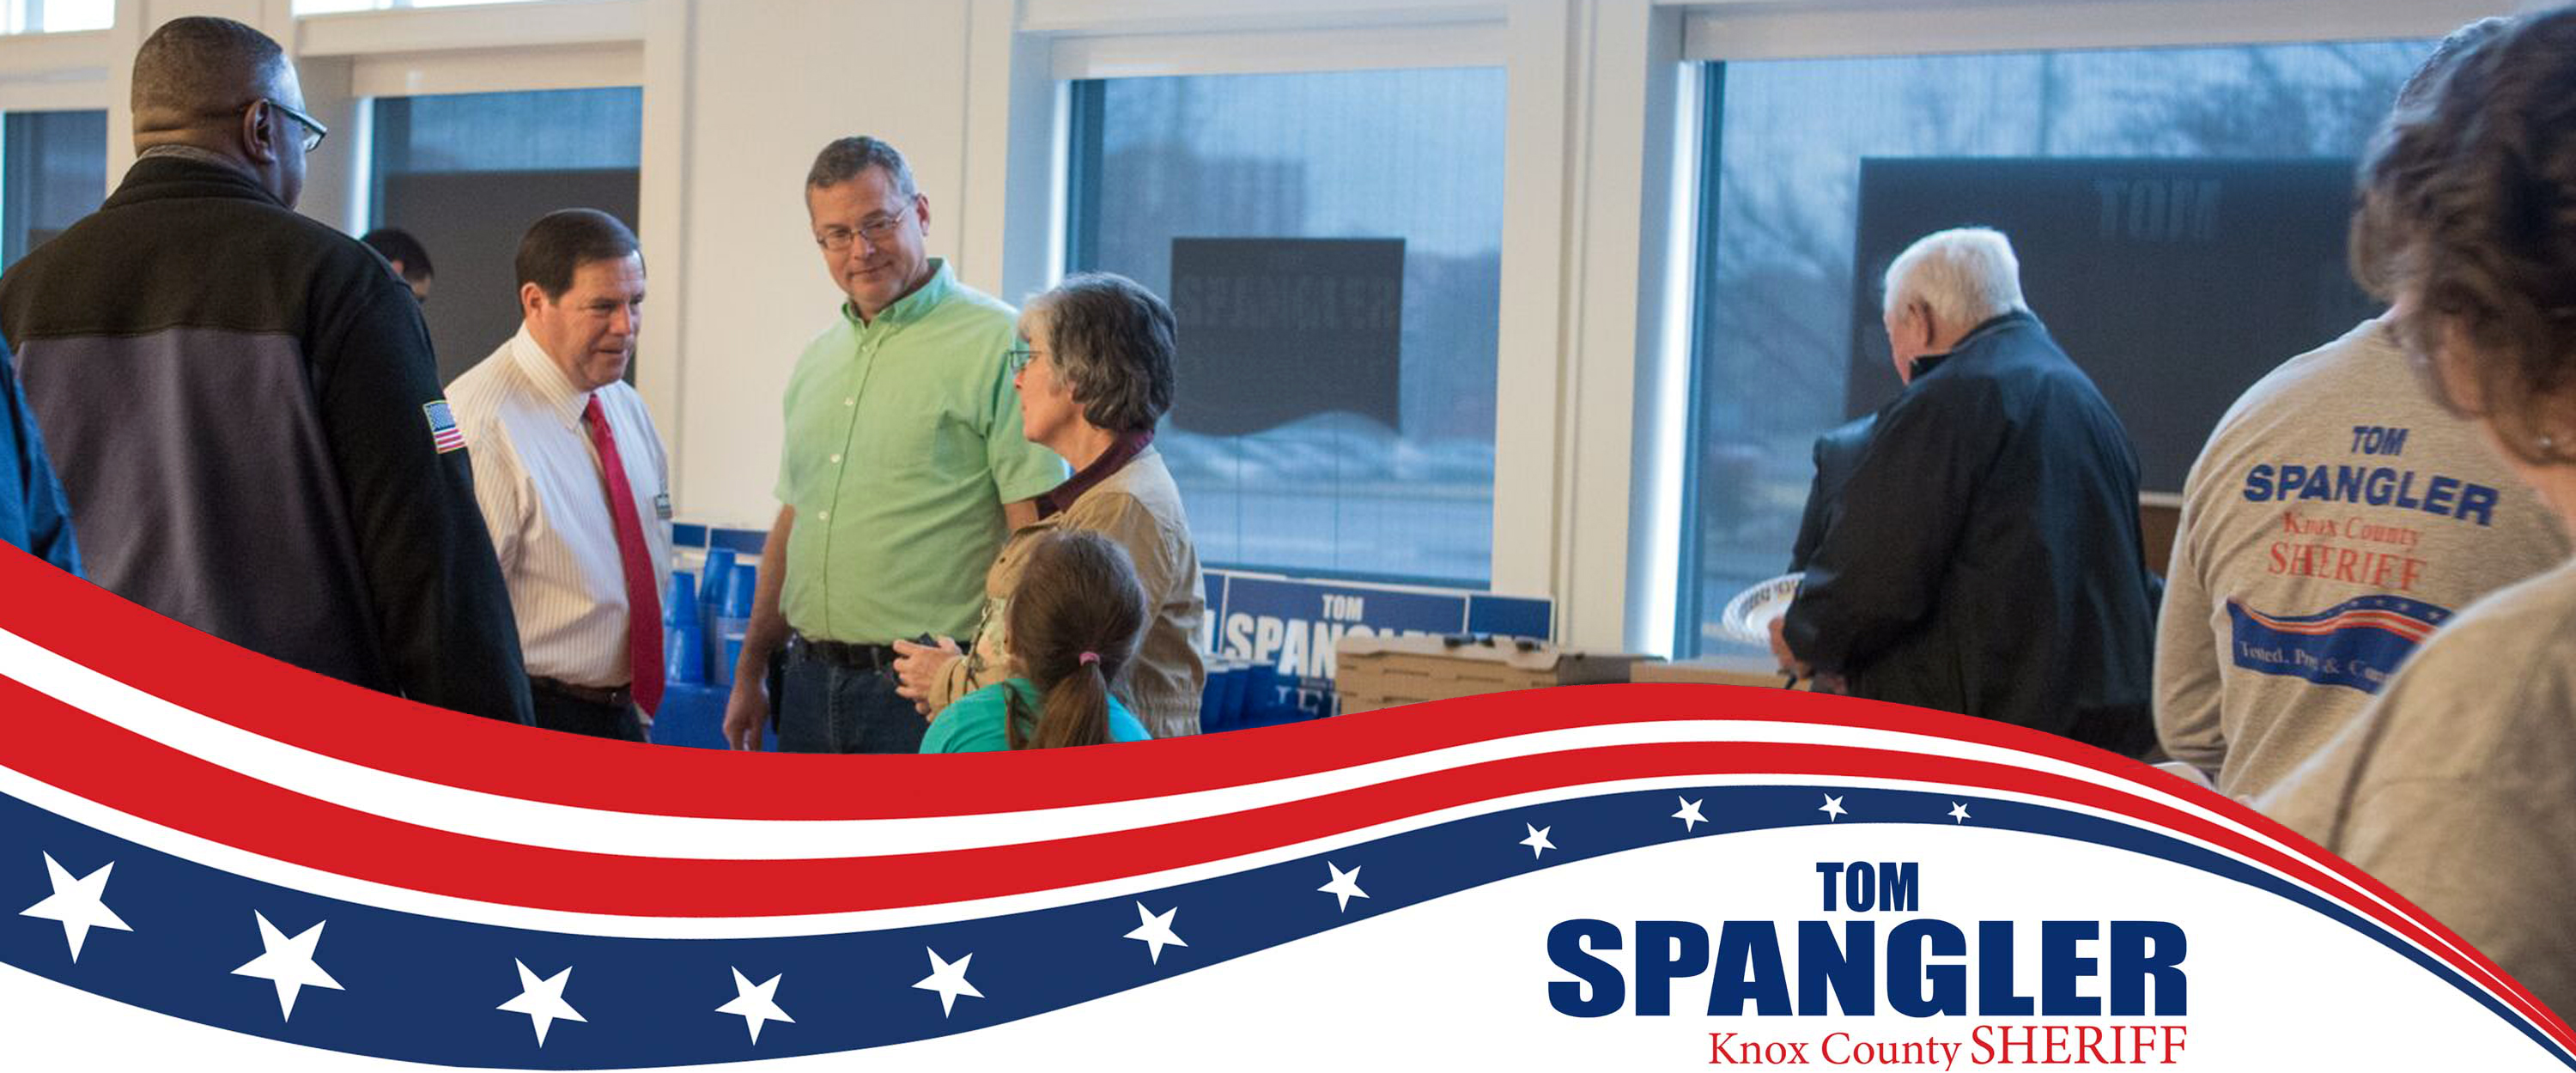 Tom Spangler Talks with Supporters at Campaign Headquarters